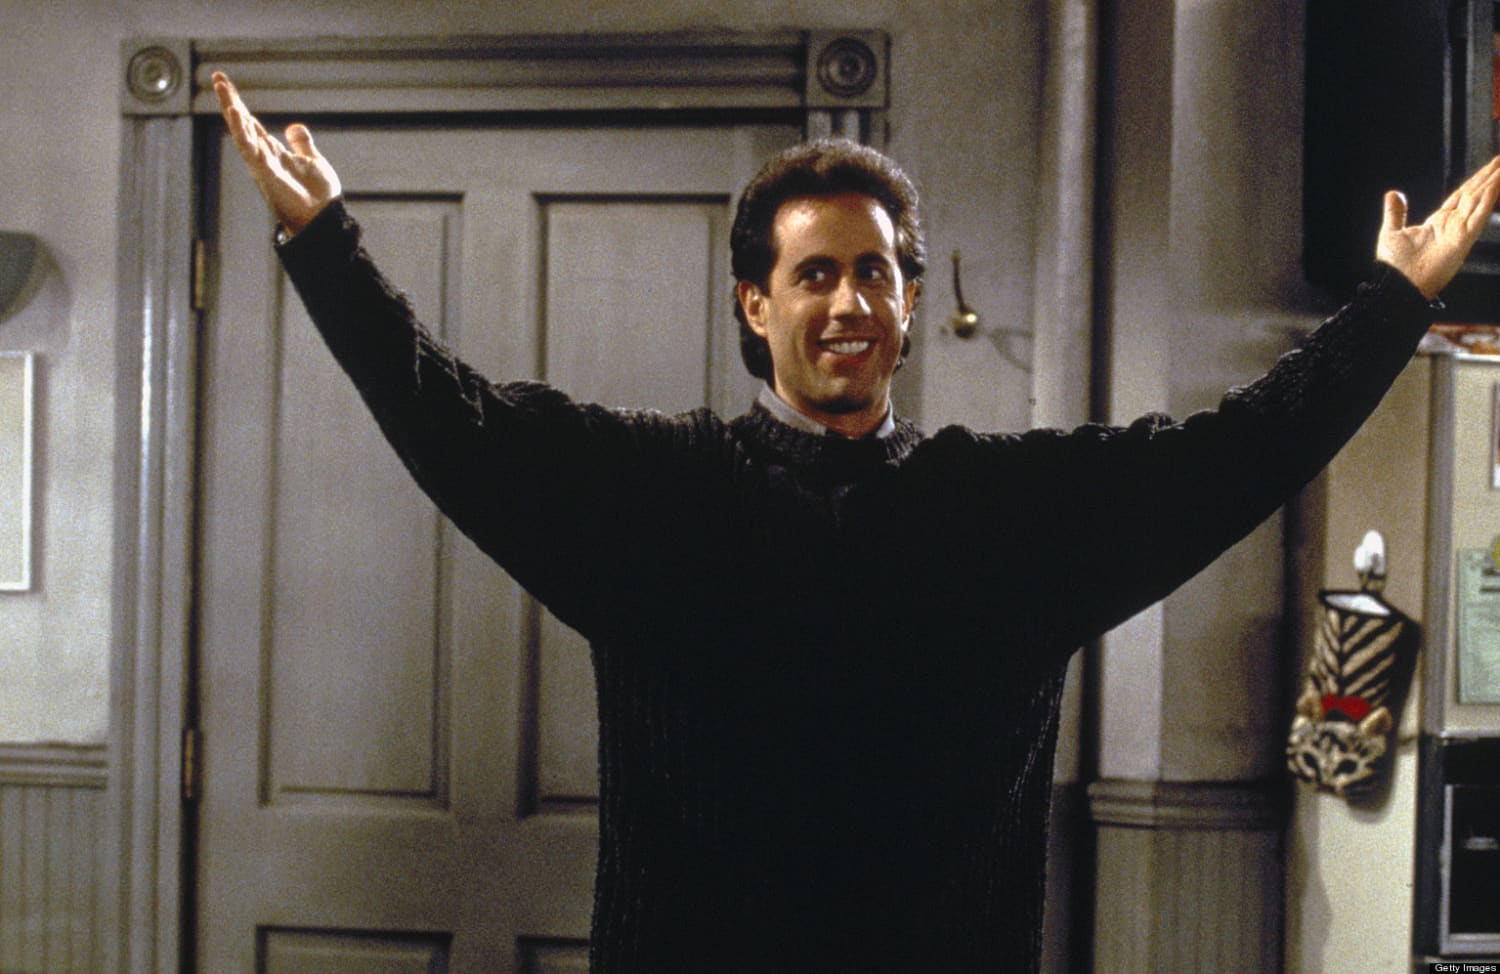 Here's What Seinfeld's Apartment Would Look Like in 2018